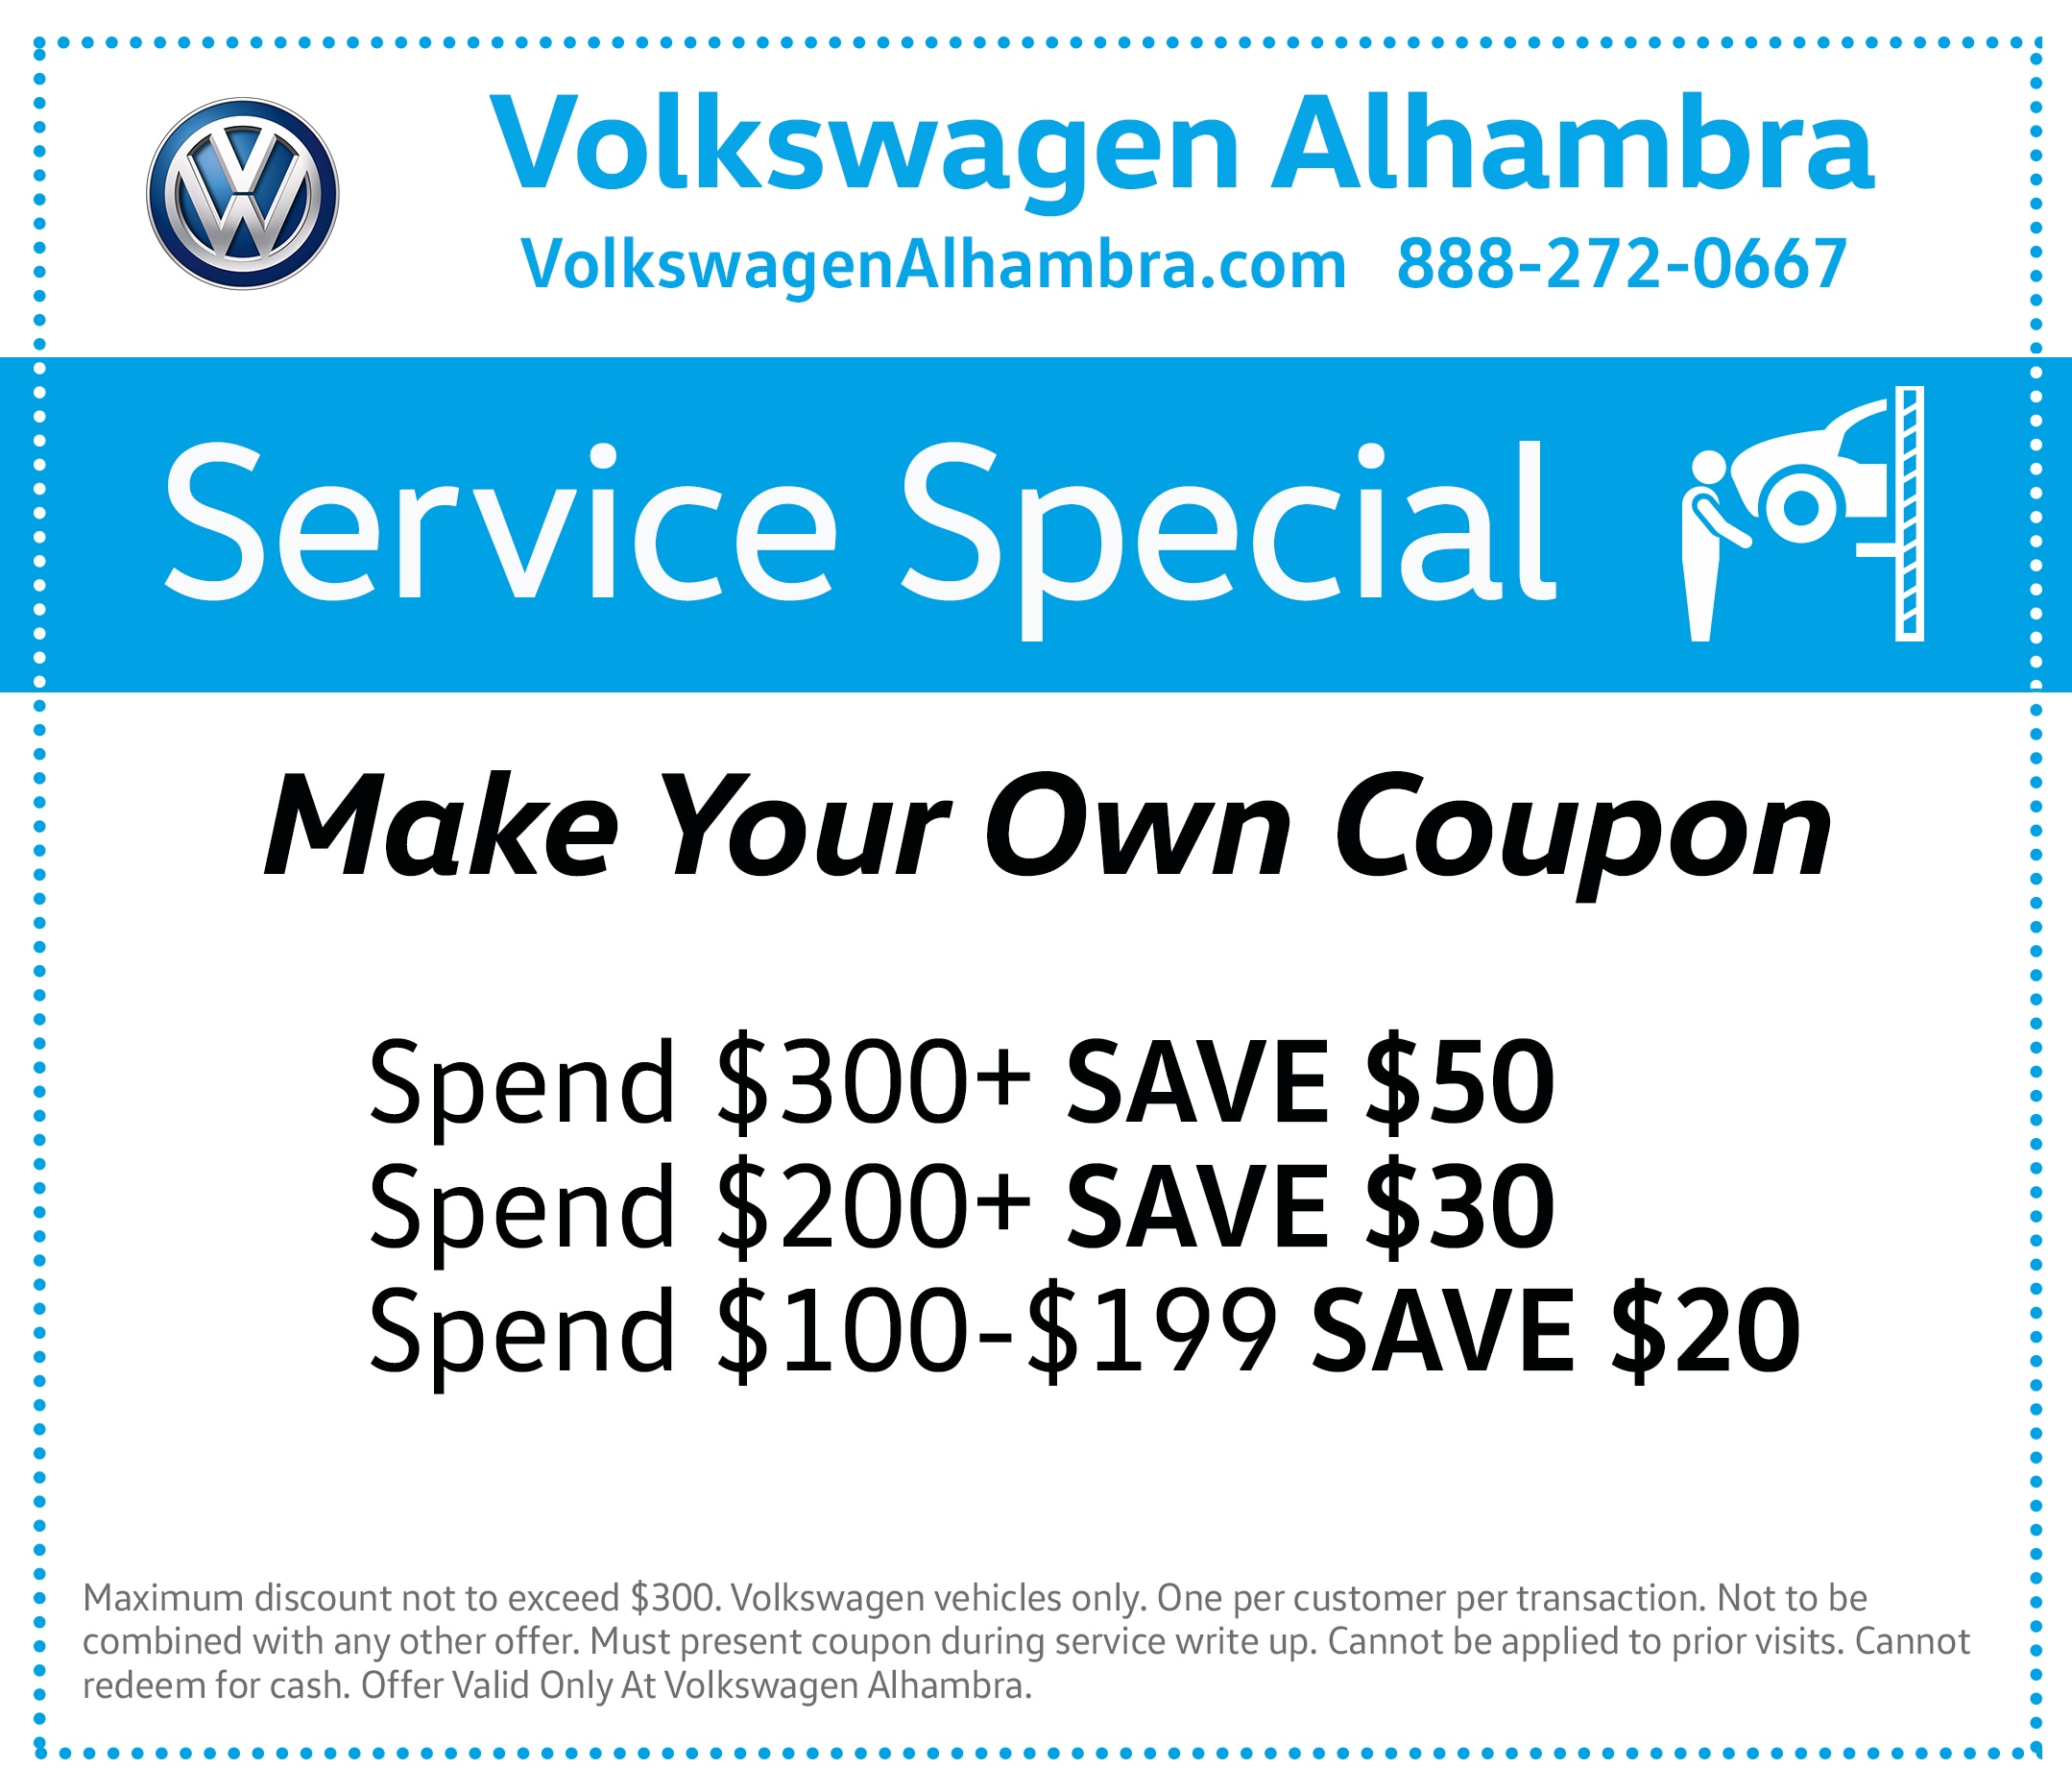 Make your Own Service Coupon at VW Alhambra!